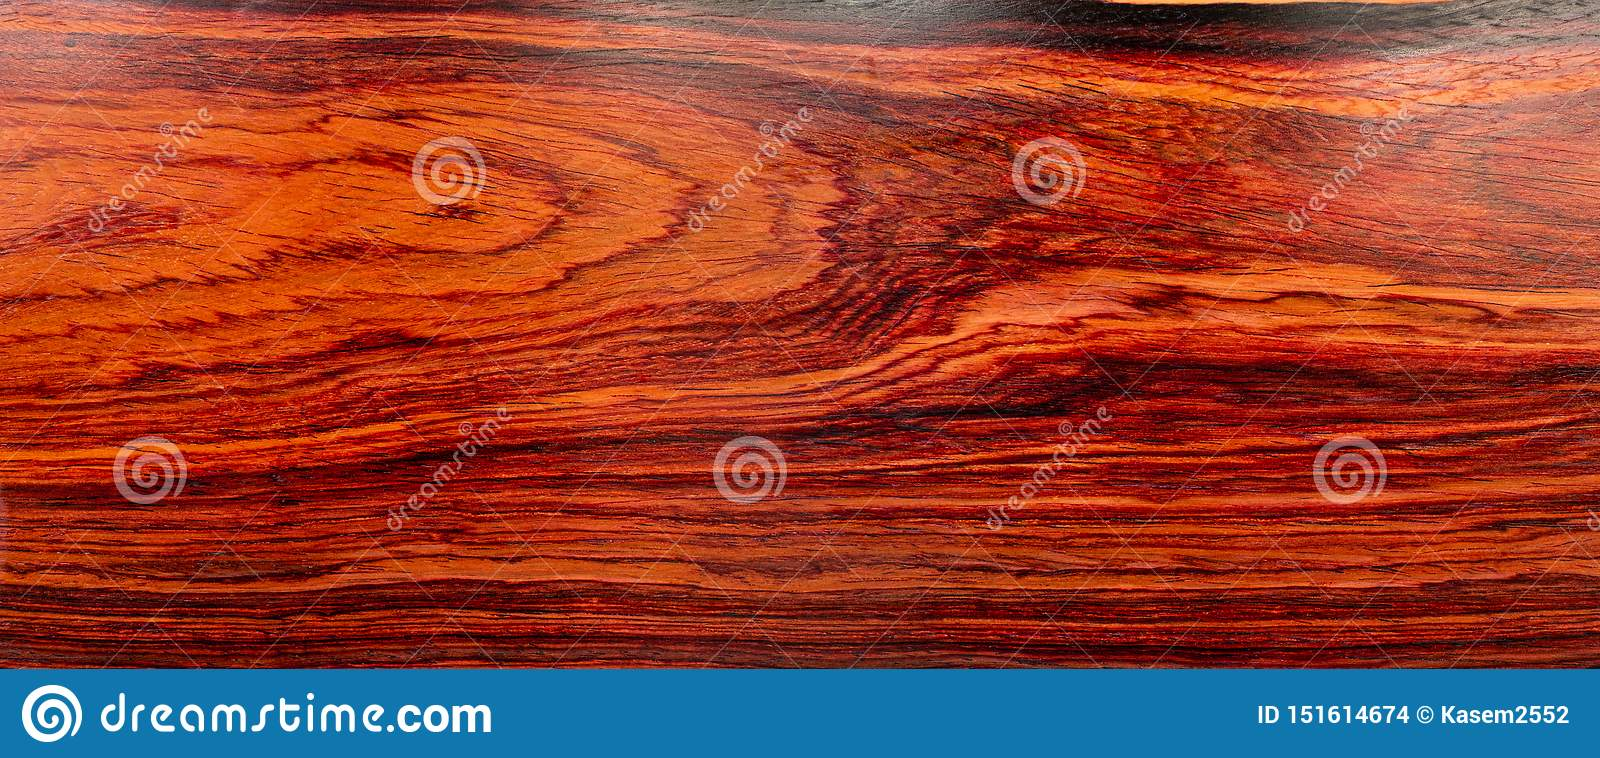 Nature Burmese rosewood Exotic wood For Picture Prints